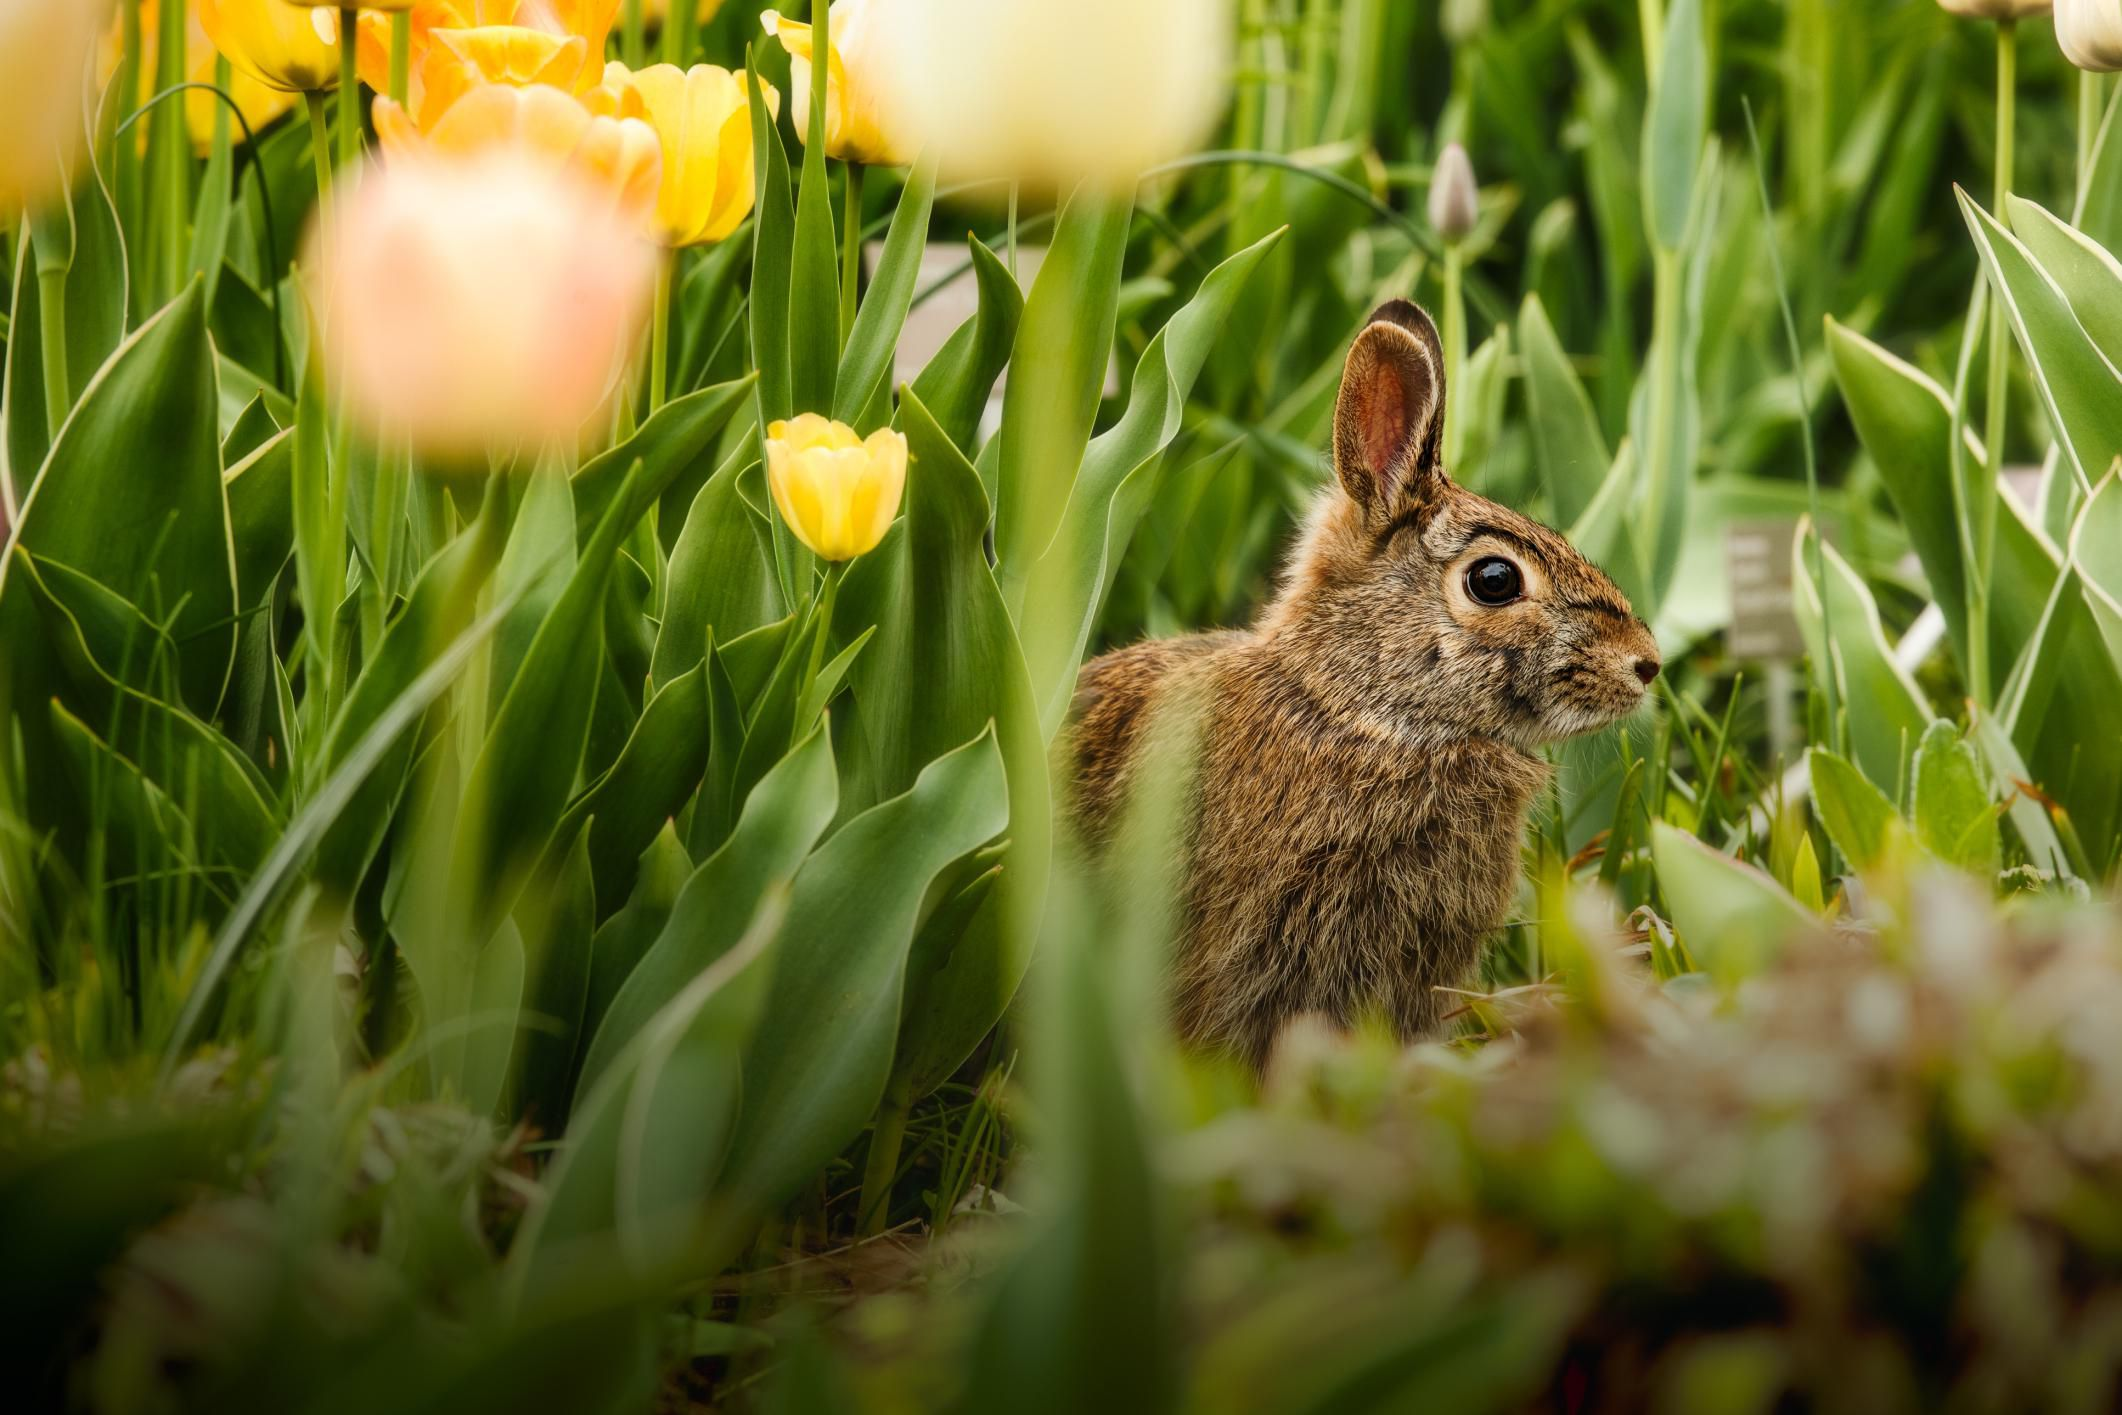 3 ways to keep rabbits out of your garden - How to keep rabbits out of garden ...